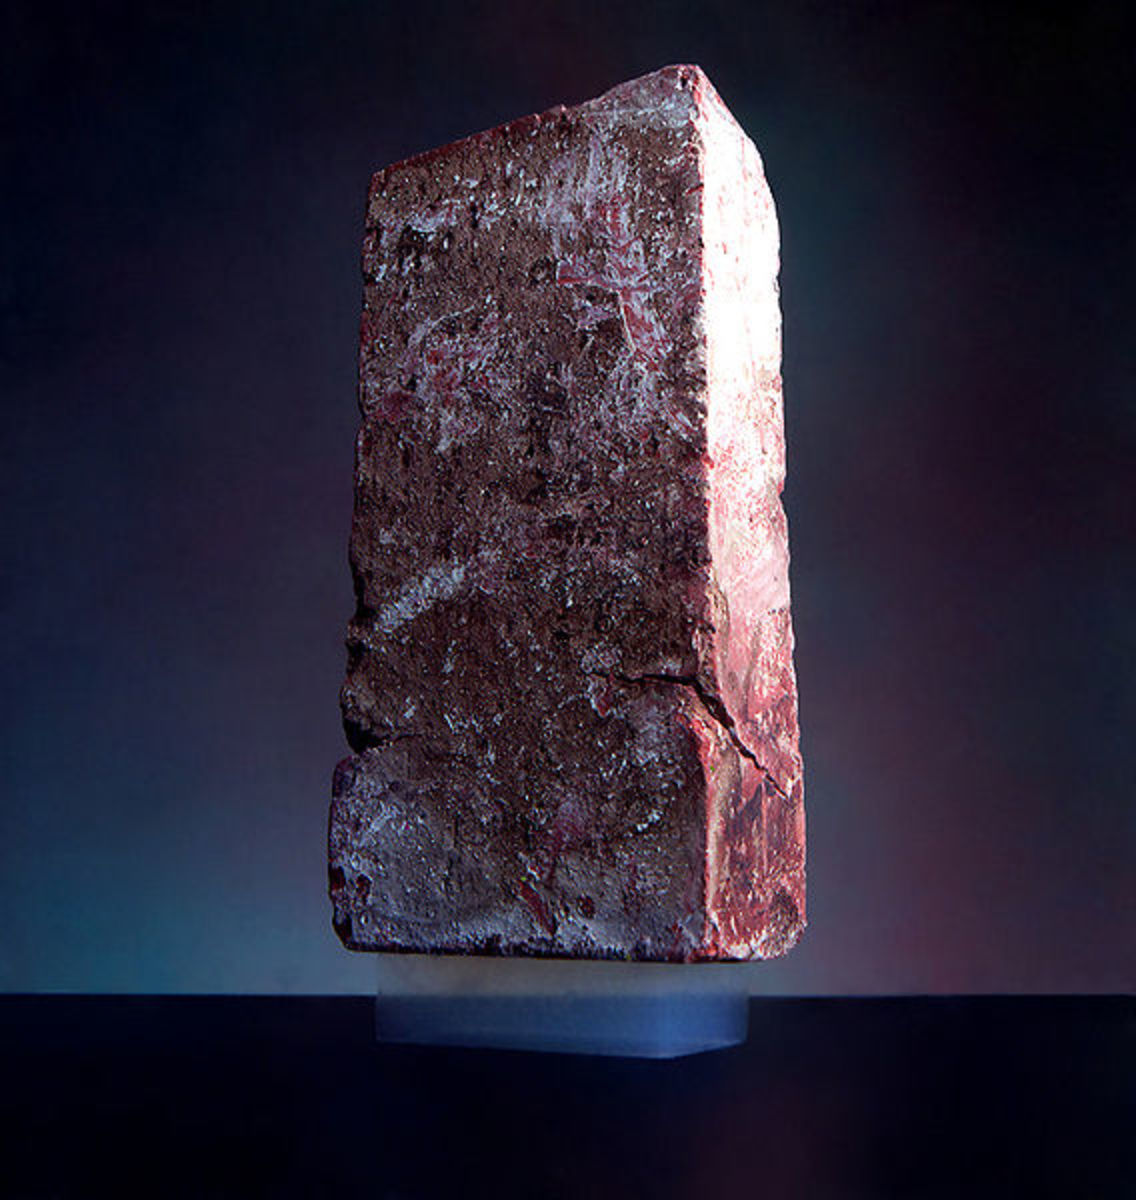 Aerogel supporting a brick. Image source WikiCommons.